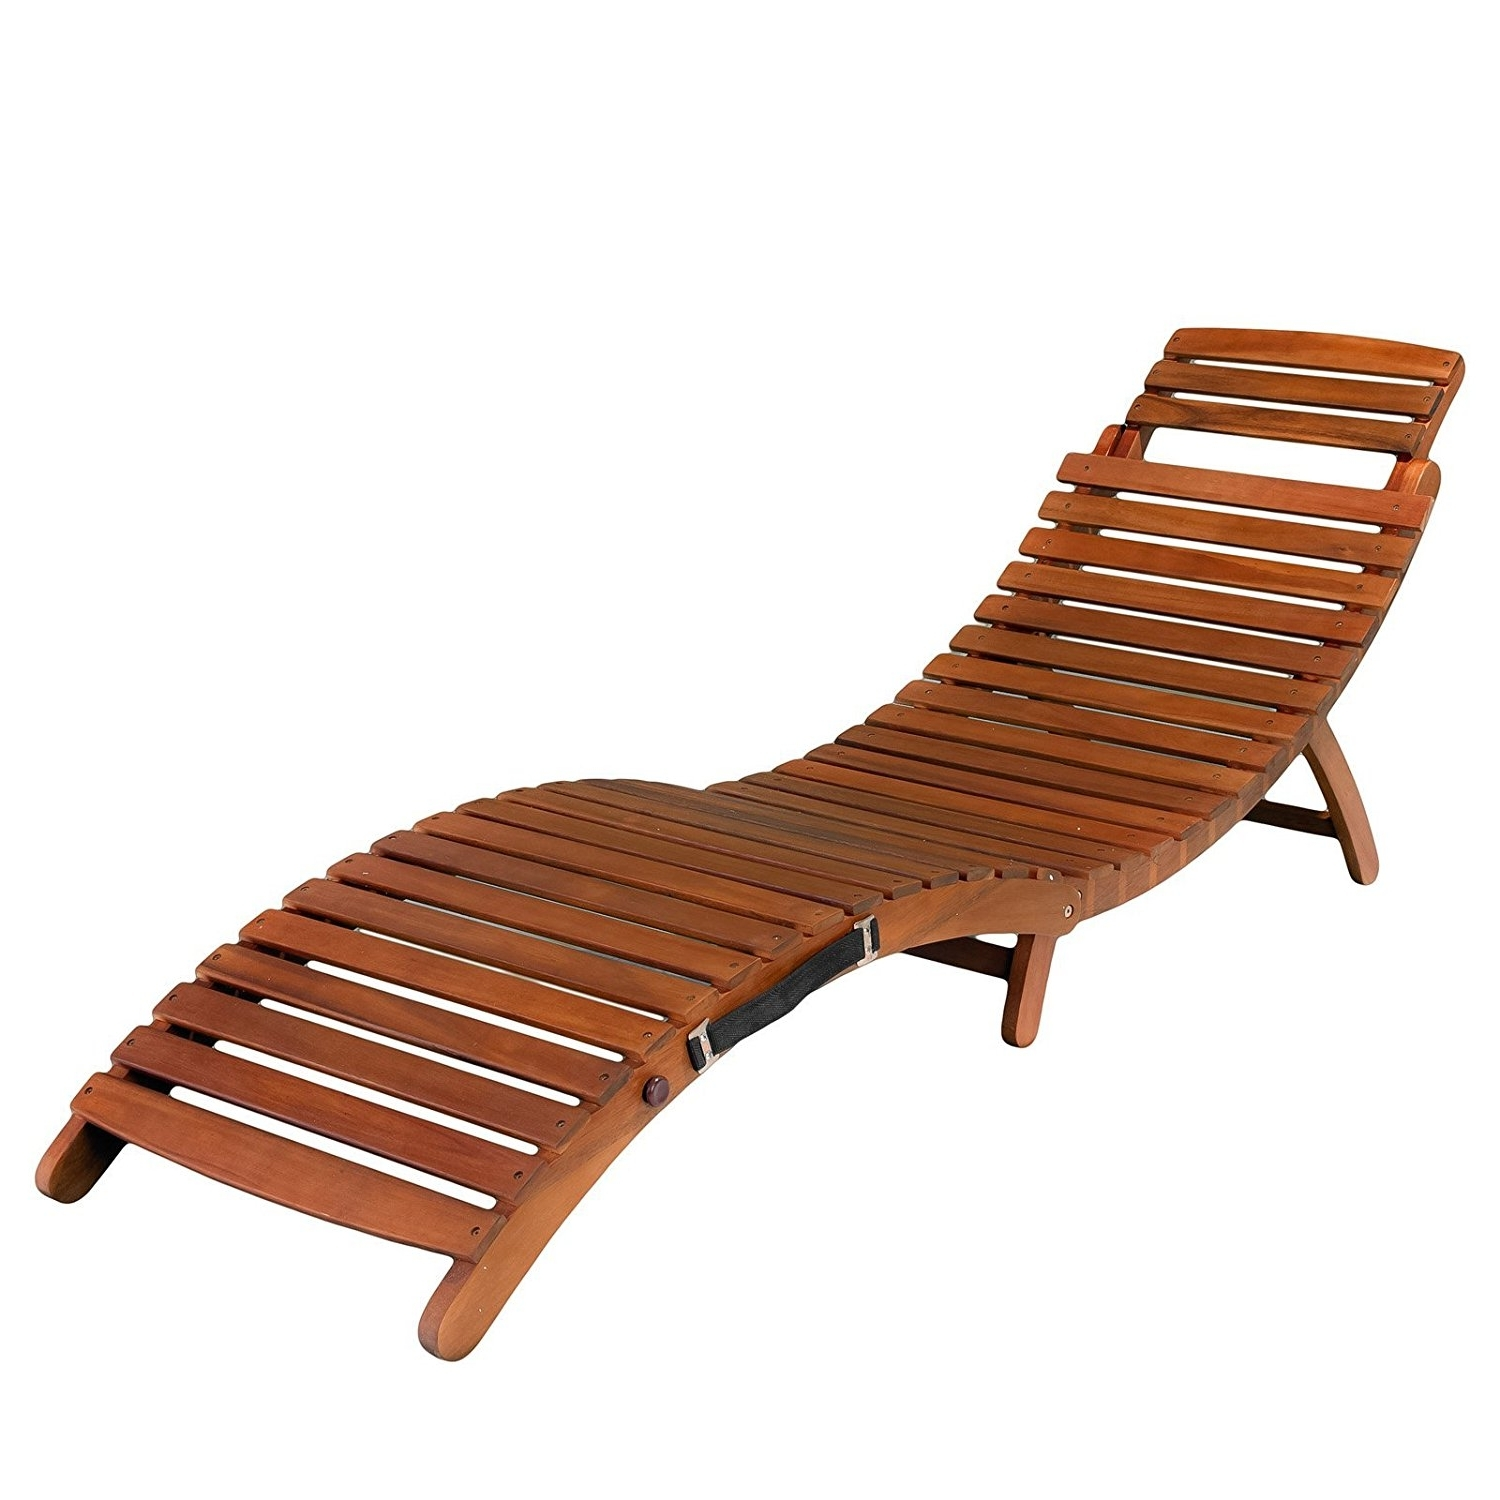 Metal Chaise Lounge Chairs In Well Liked Amazon: Lahaina Outdoor Chaise Lounge: Garden & Outdoor (View 9 of 15)